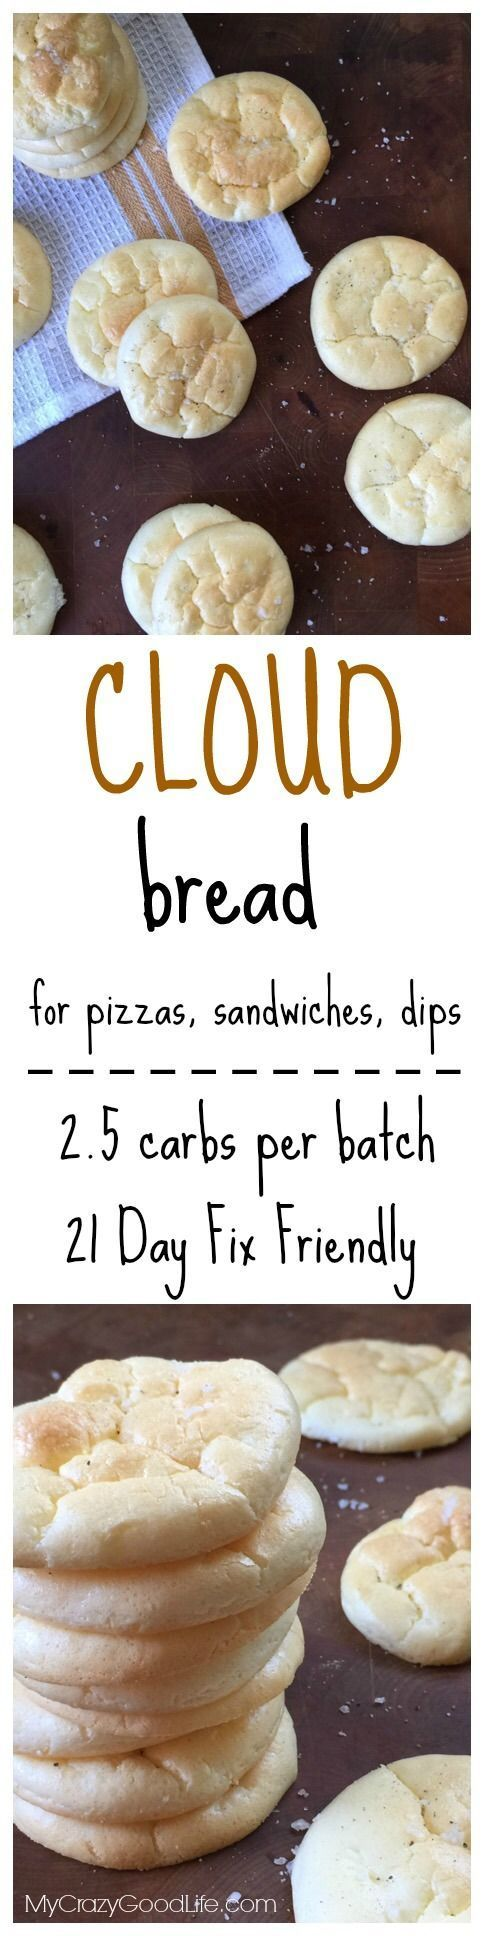 This low carb Cloud Bread recipe has just 2.5 carbs per batchthat's about 15 cracker-sized pieces. It's great for those on a low carb diet, a gluten free diet, on the 21 Day Fix, or even just those who are trying to eat a bit less grain.